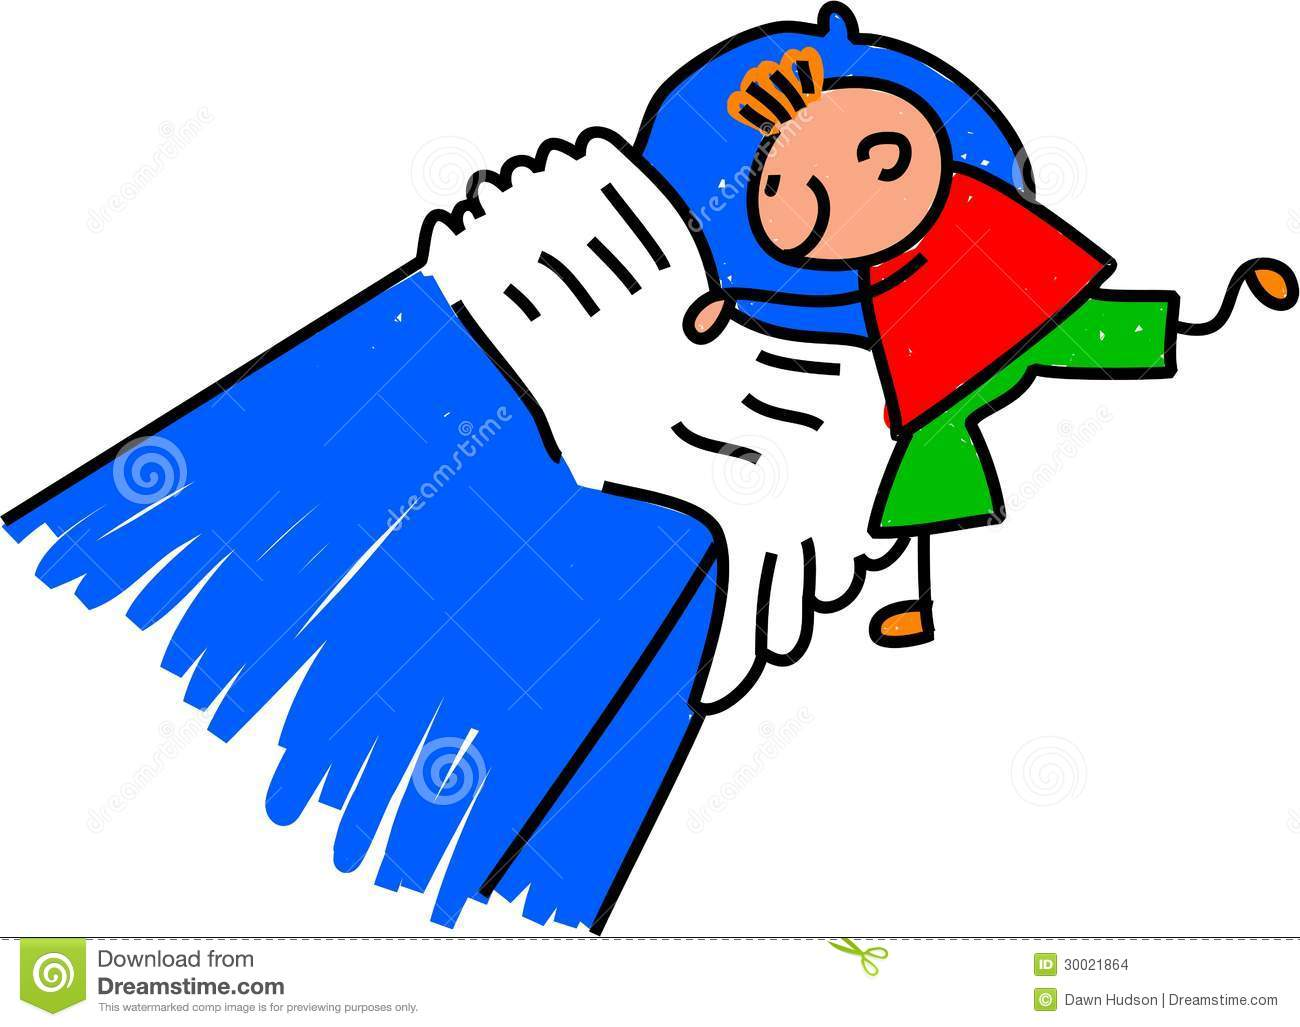 Pictures Make Bed Clipart Make Bed Clipa-Pictures Make Bed Clipart Make Bed Clipart Make Bed Clipart-14